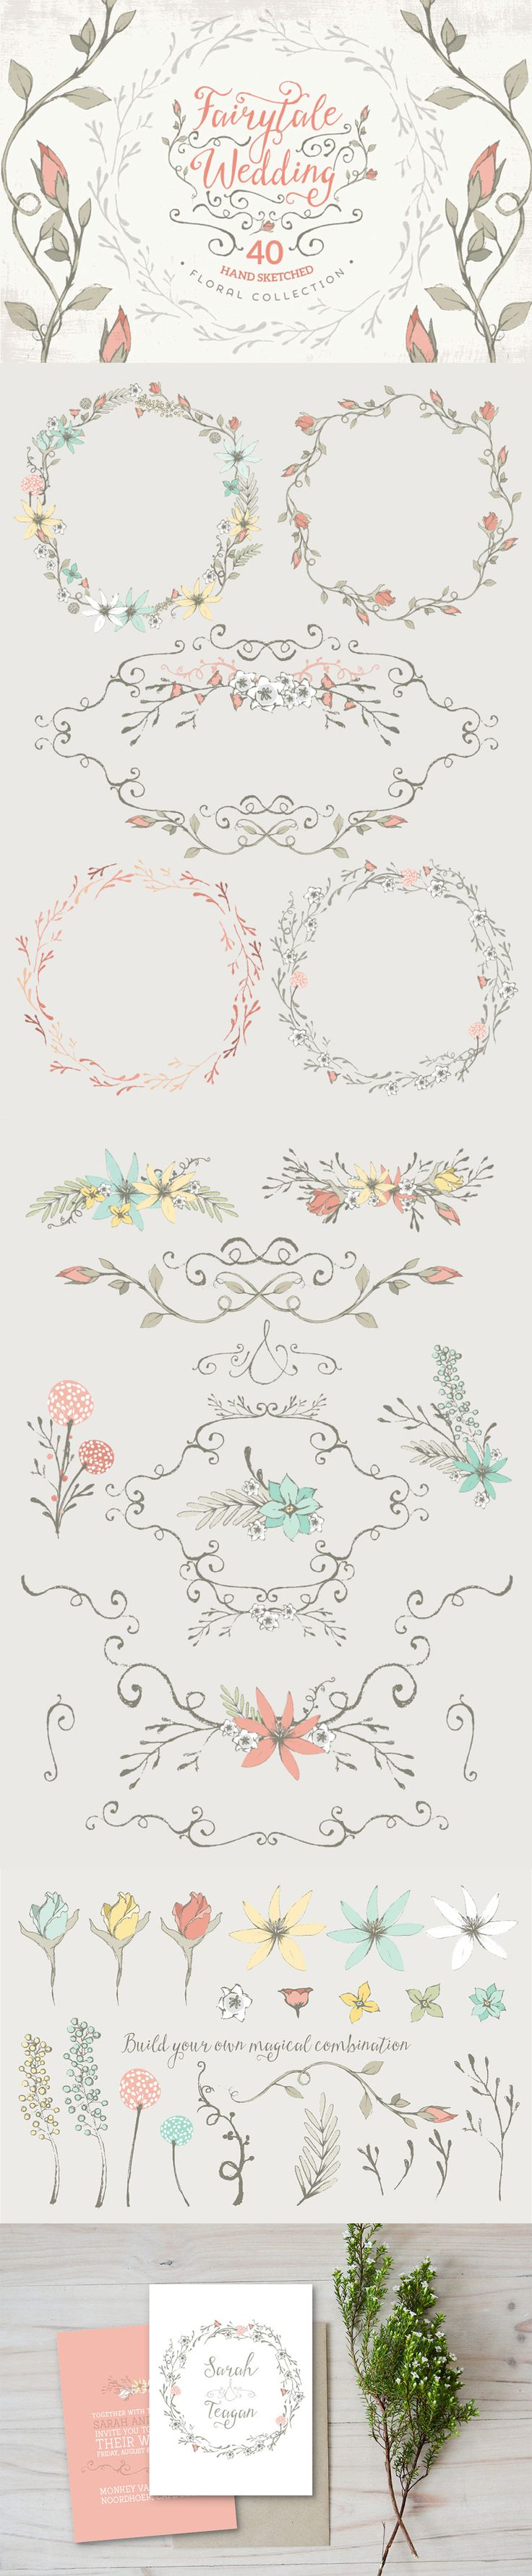 best ideas about floral border calligraphy we ve included a vast range of quality items covering decorative flourishes patterns textures vintage items effects packs floral designs